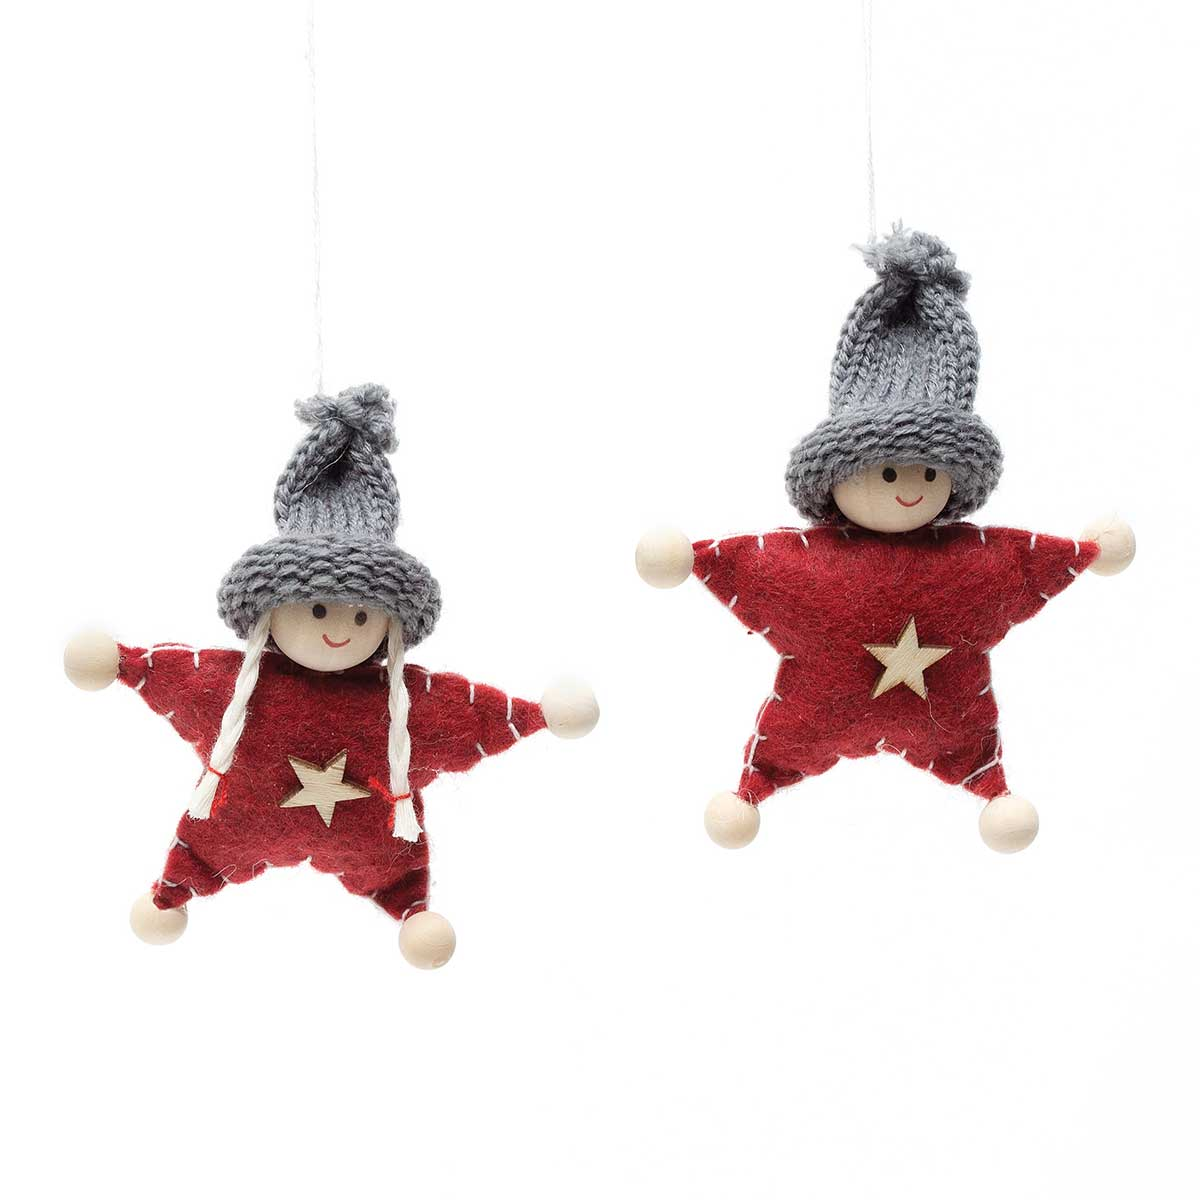 RED/GREY STAR ORNAMENT 2 ASSORTED STYLES - PRICE PER INDIVIDUAL